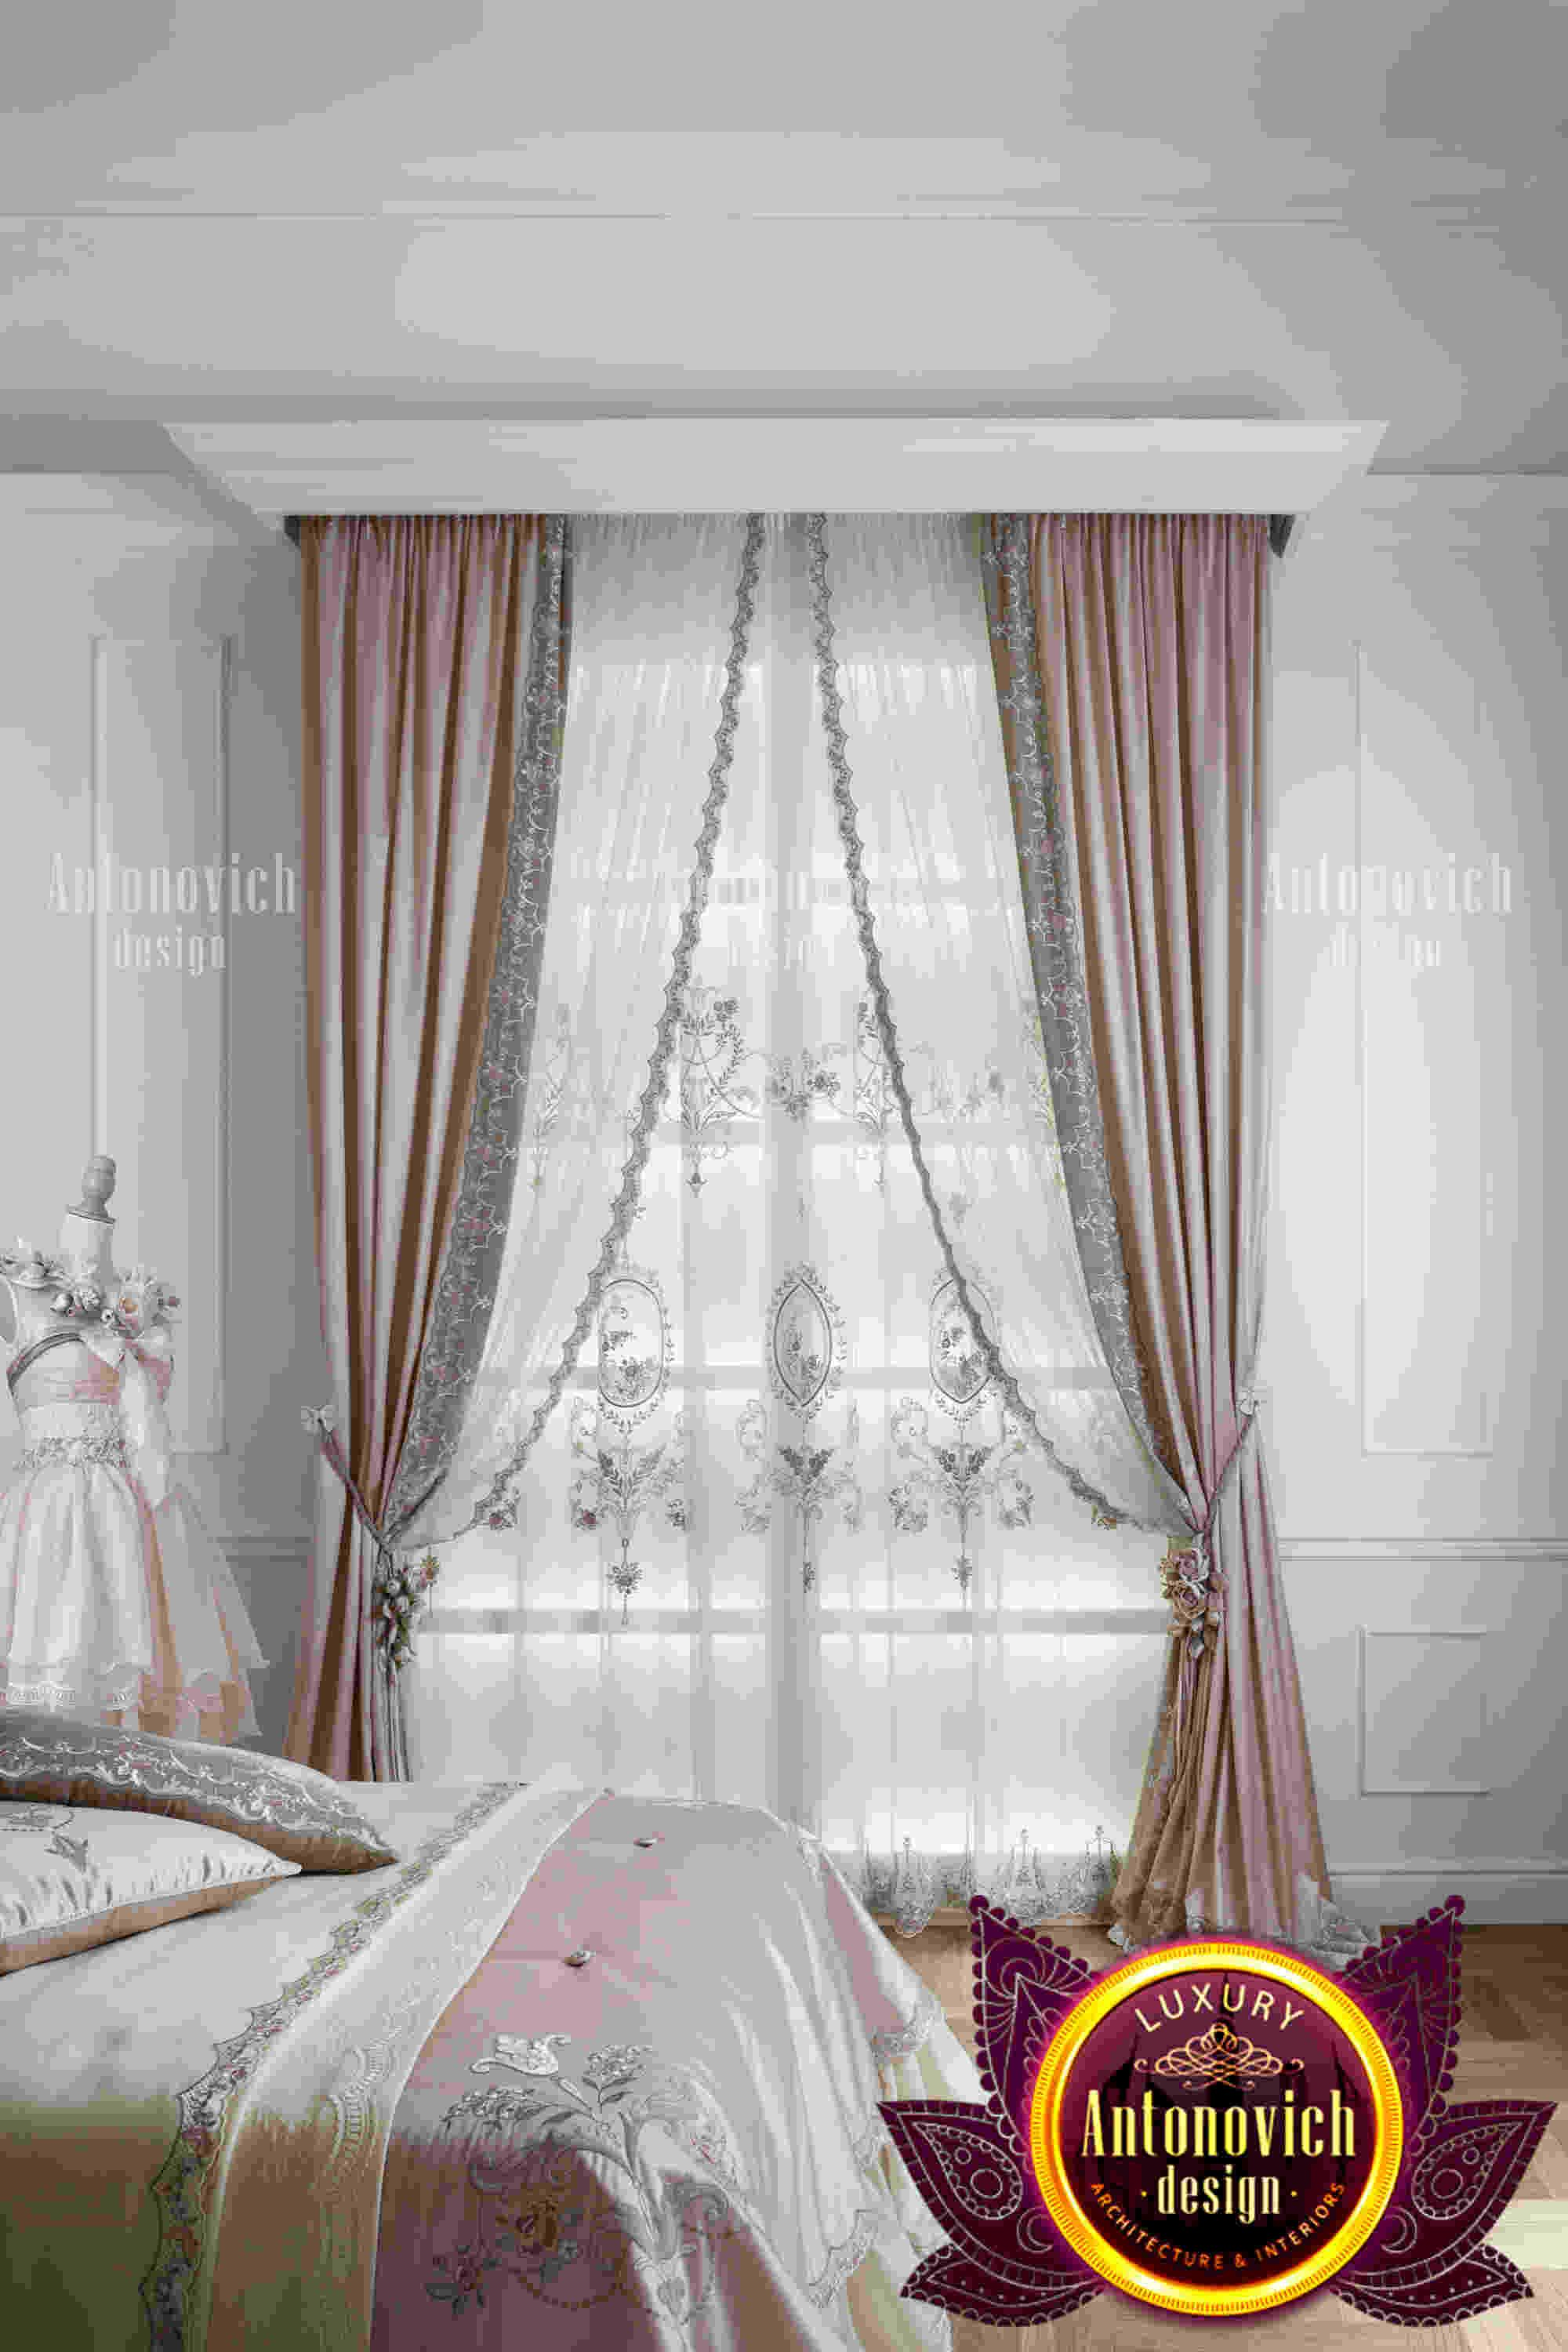 Window Draperies From Luxury Antonovich Design Have A Presentable